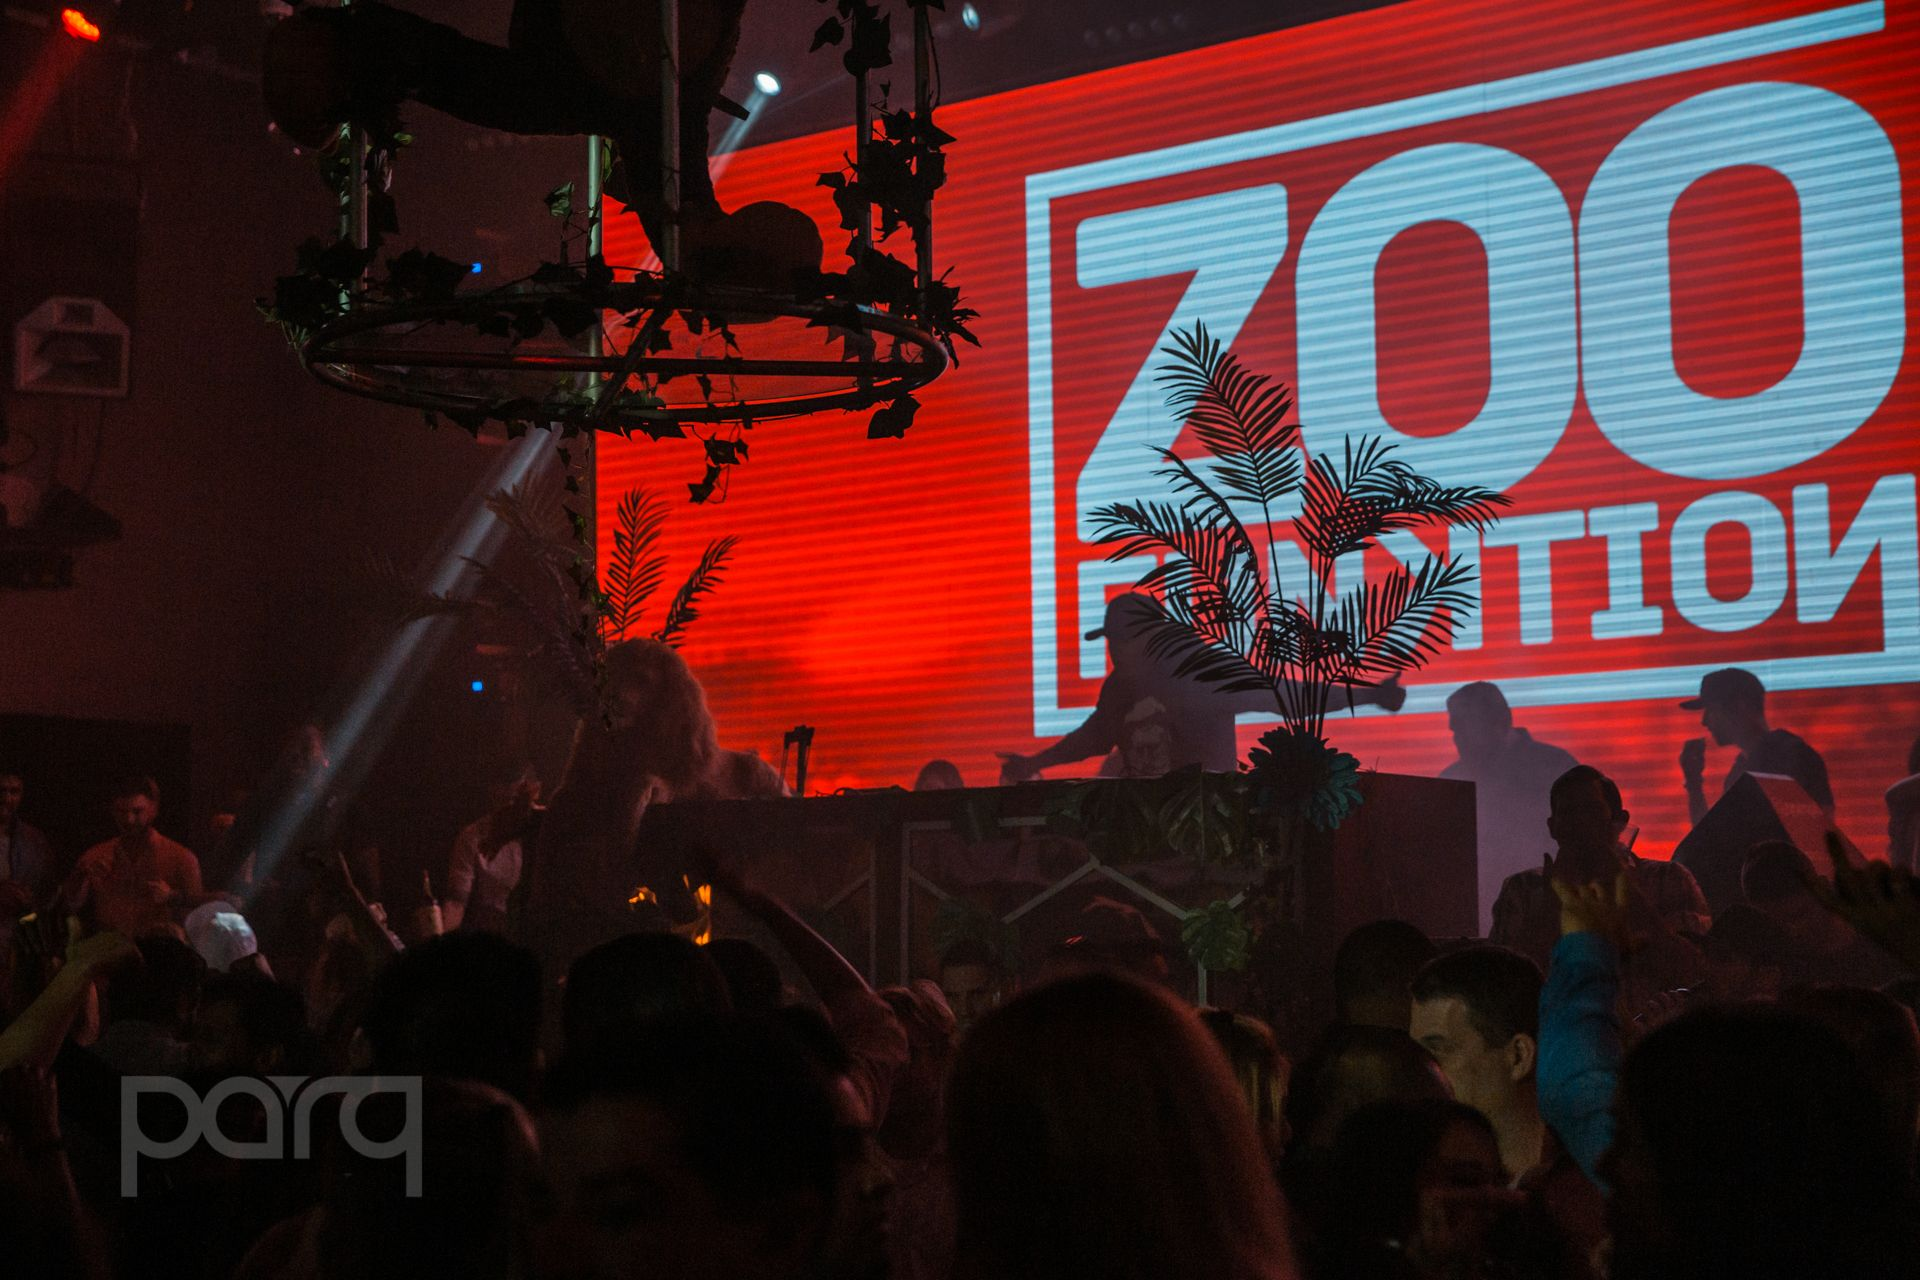 06.24.17 Zoo Funktion-20.jpg